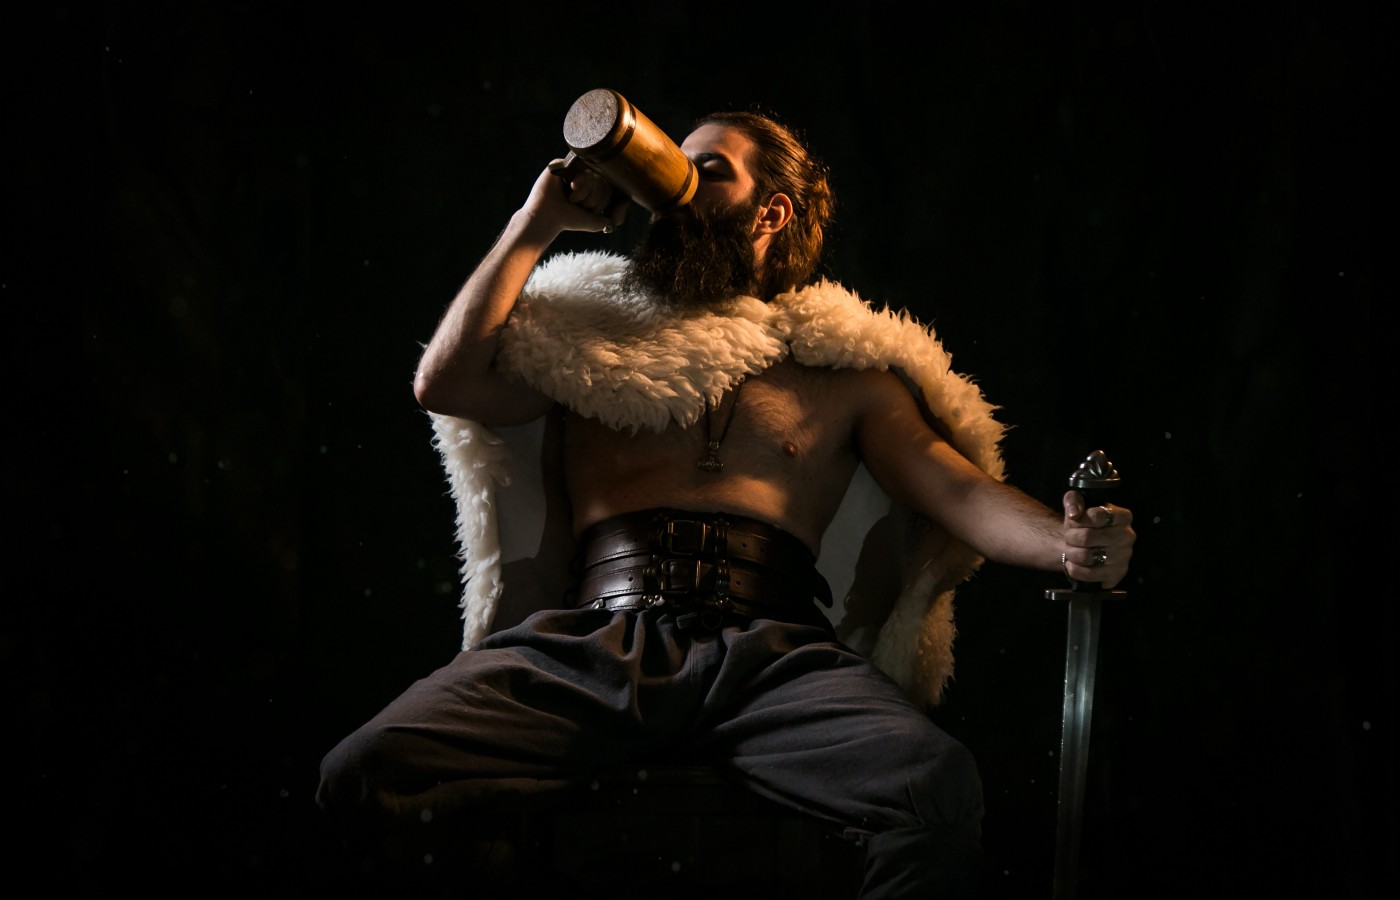 seated man guzzling ale and holding a sword